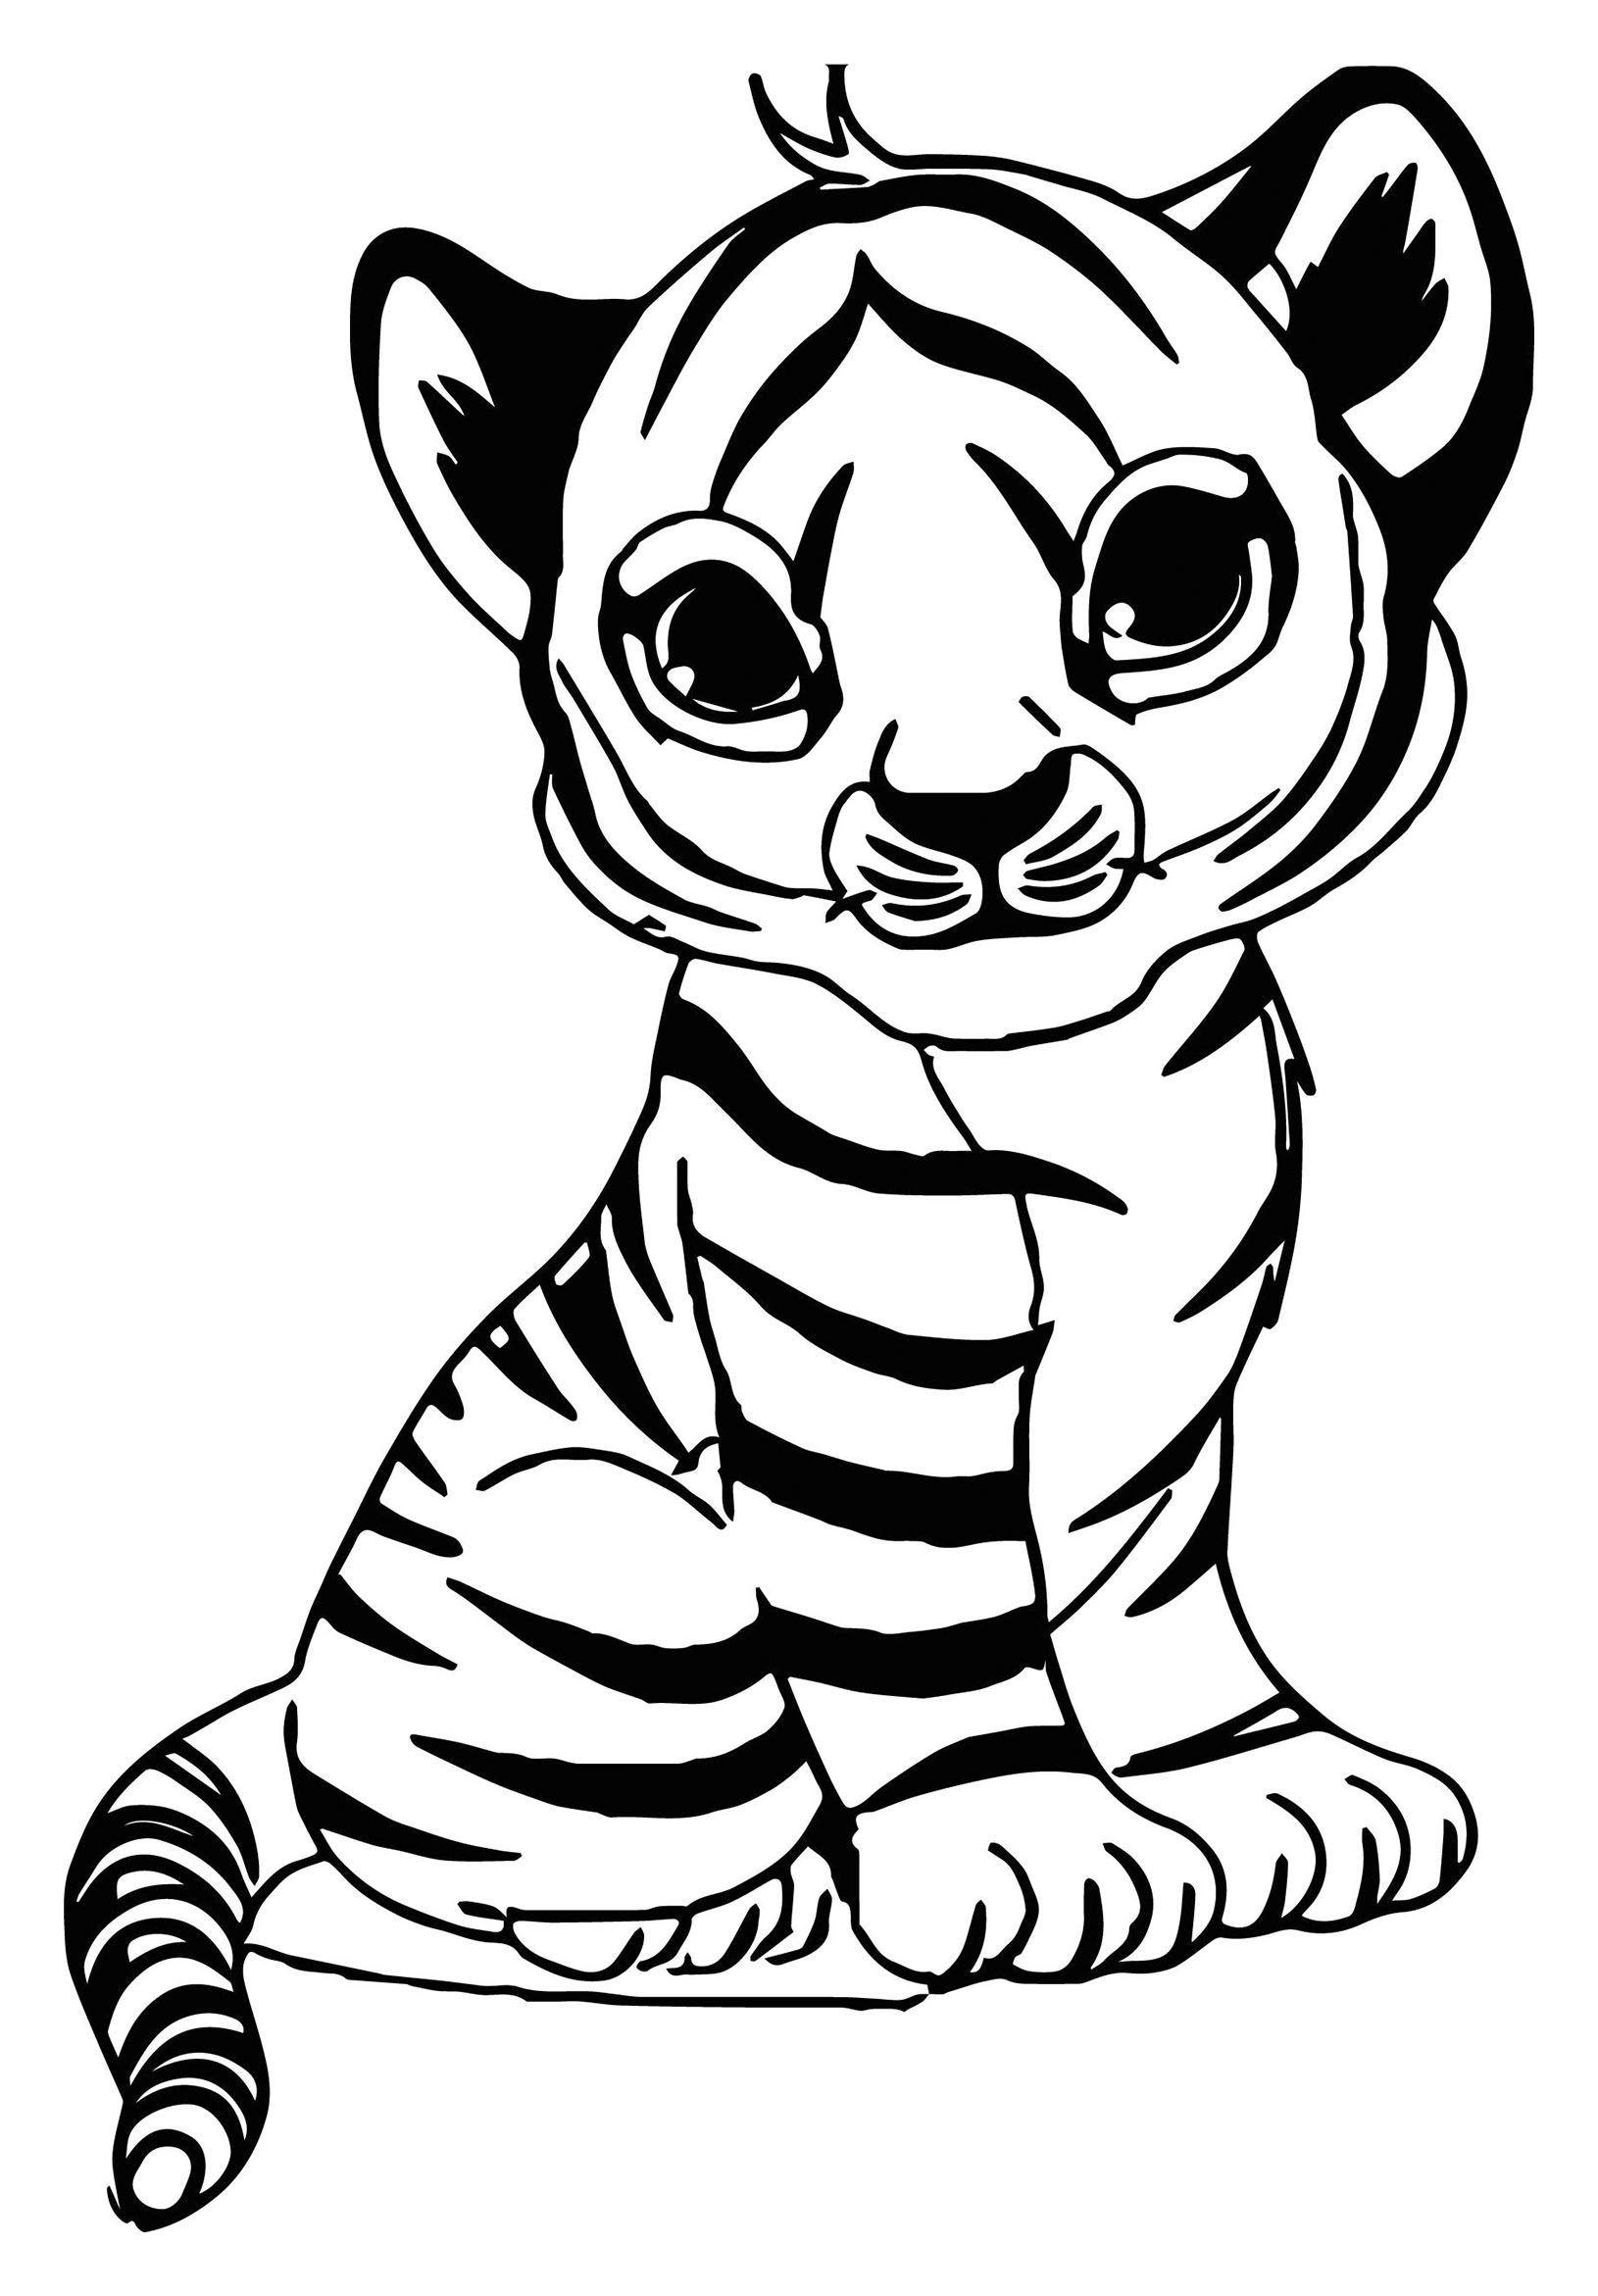 tiger coloring book the cutest baby tiger coloring page free printable tiger book coloring